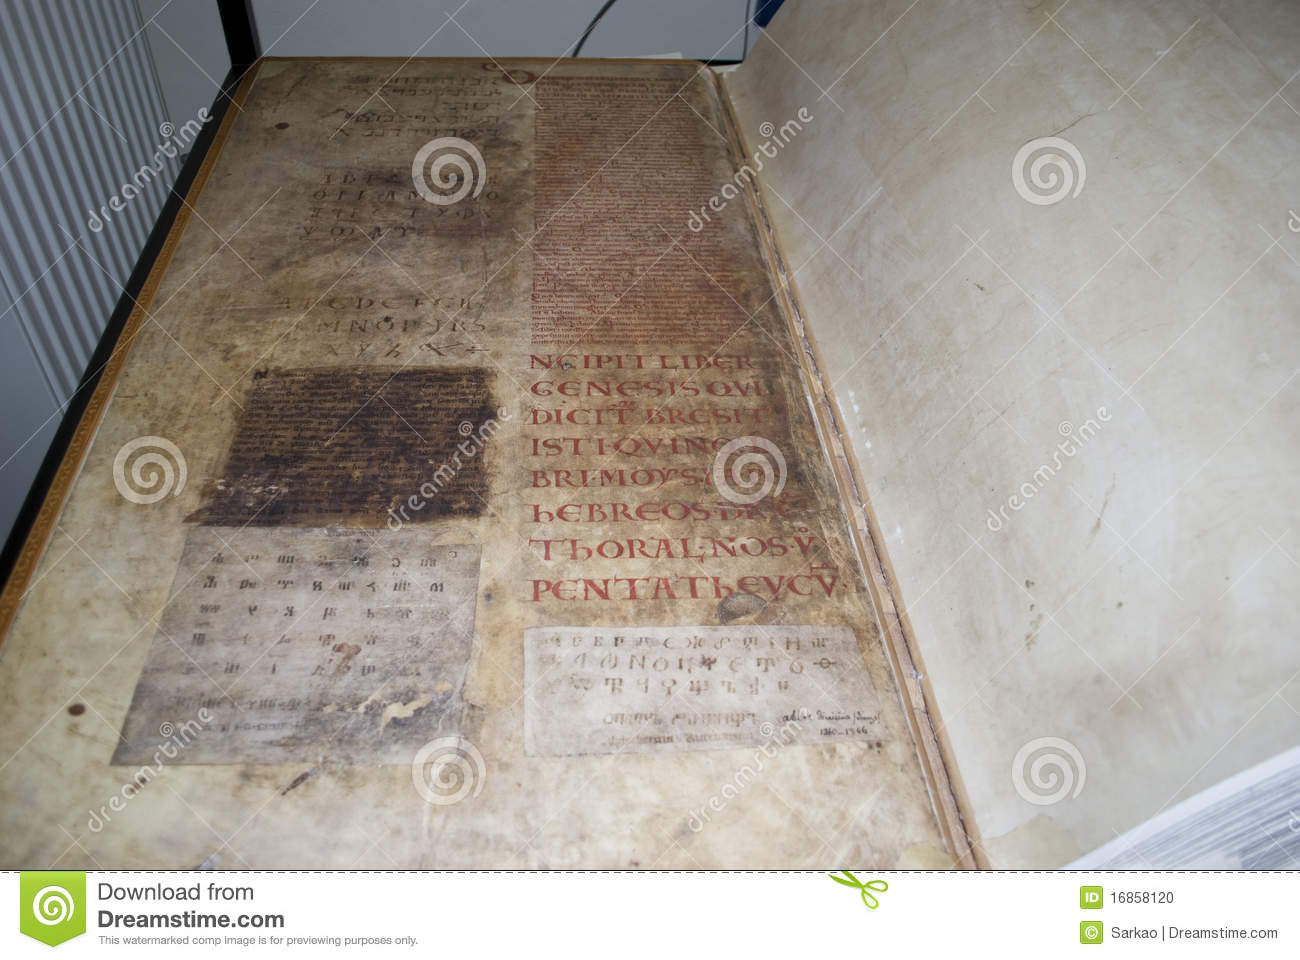 10 of the Oldest Known Surviving Books in the World